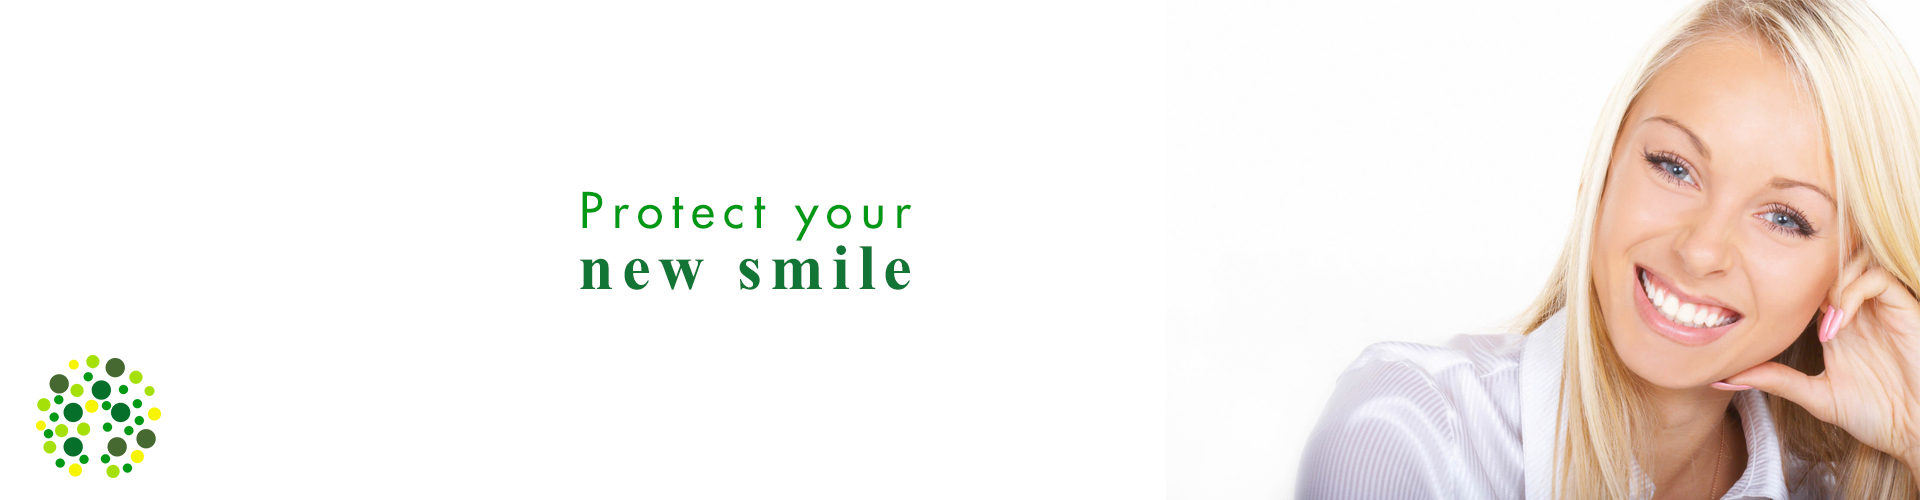 protect your new smile